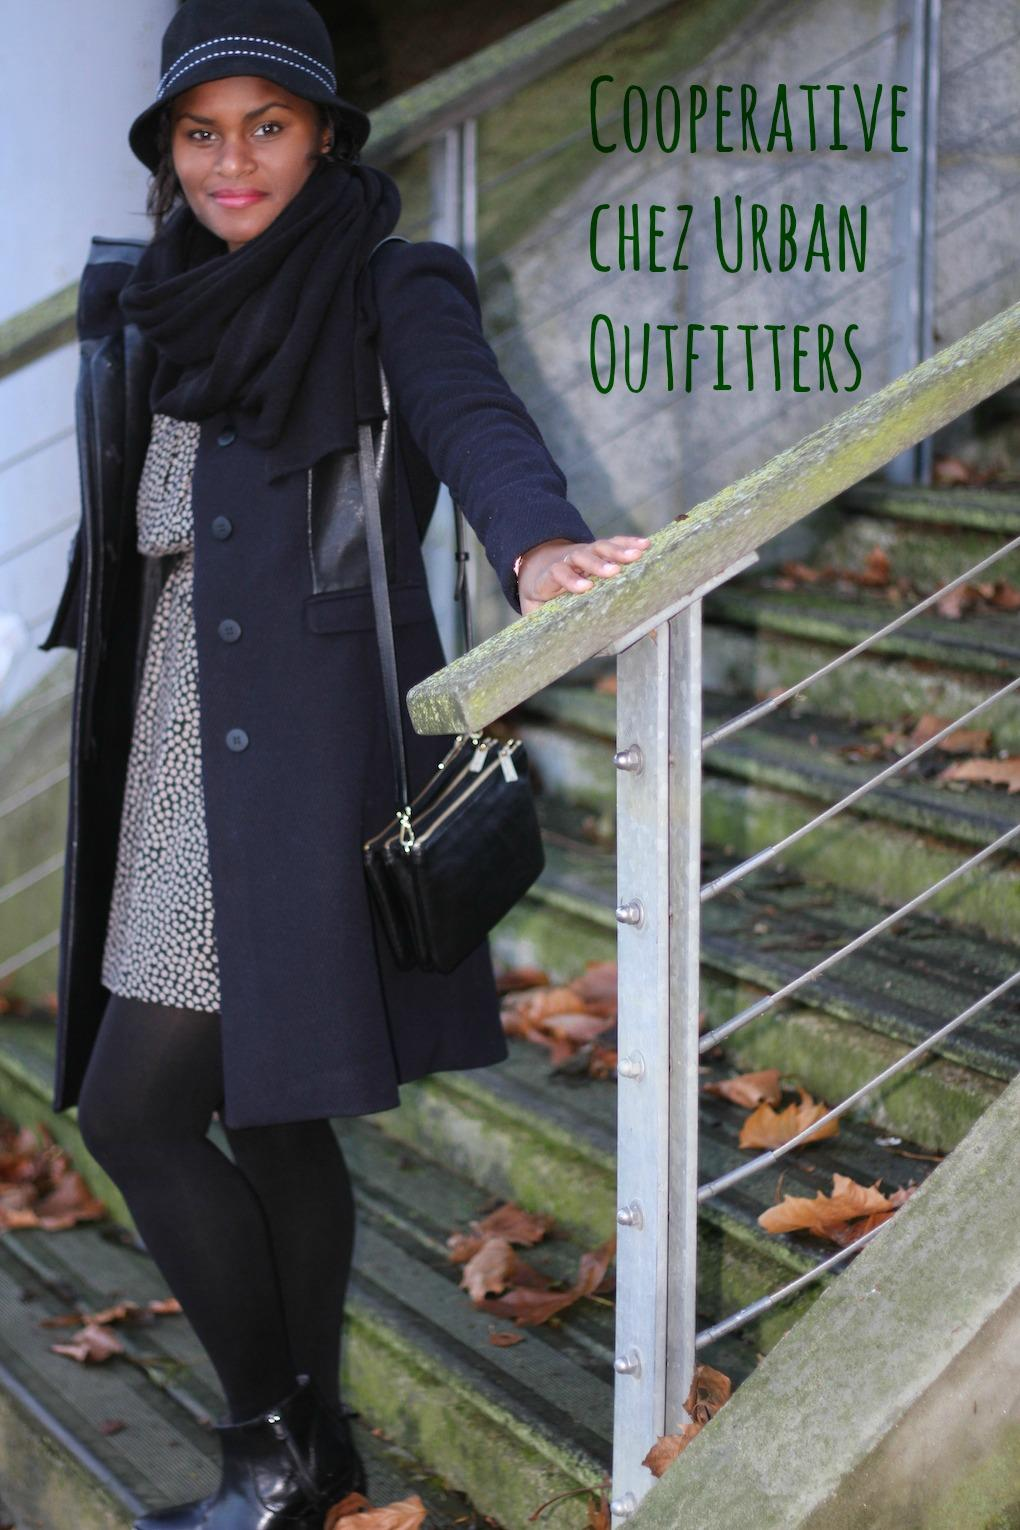 cooperative-urban-outfitters-L-qbvQ6K Cooperative chez Urban Outfitters